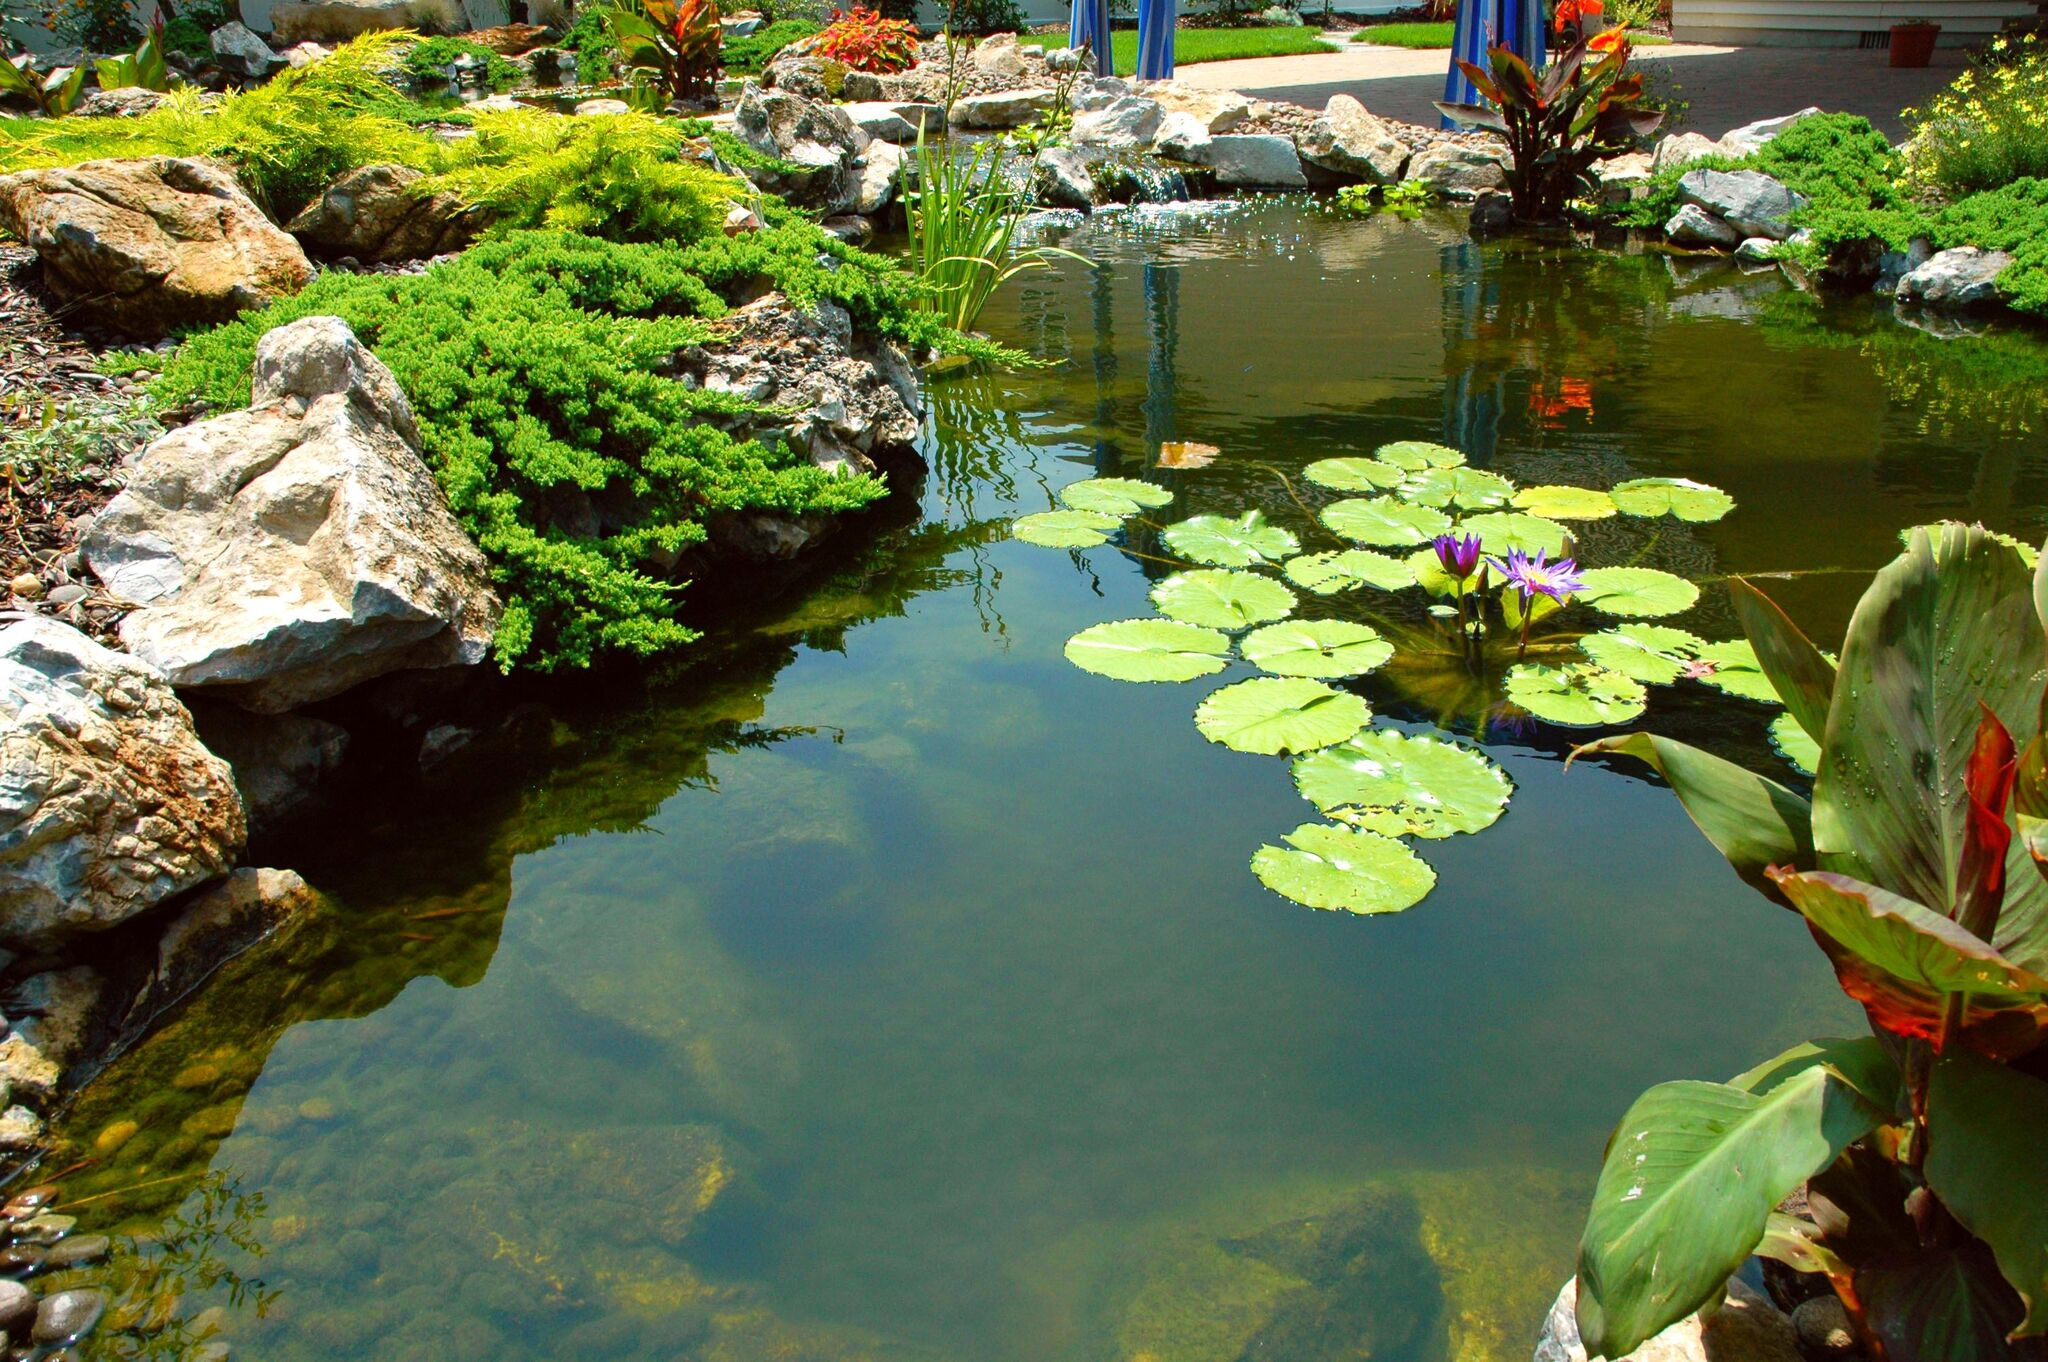 The benefits of aquatic plants and water garden landscaping for Koi pond deck